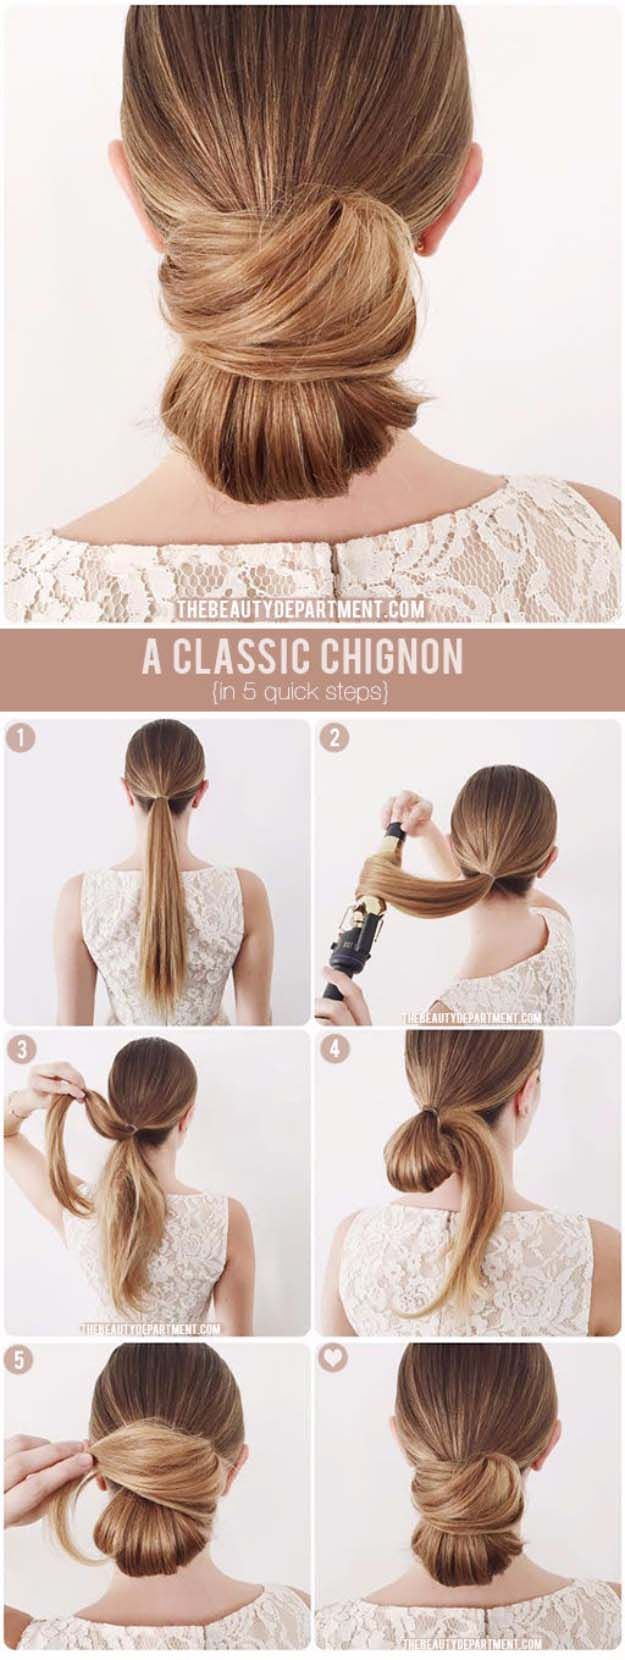 Best Hairstyles for Brides - Classic Chignon- Amazing Hair Styles and Looks for ...